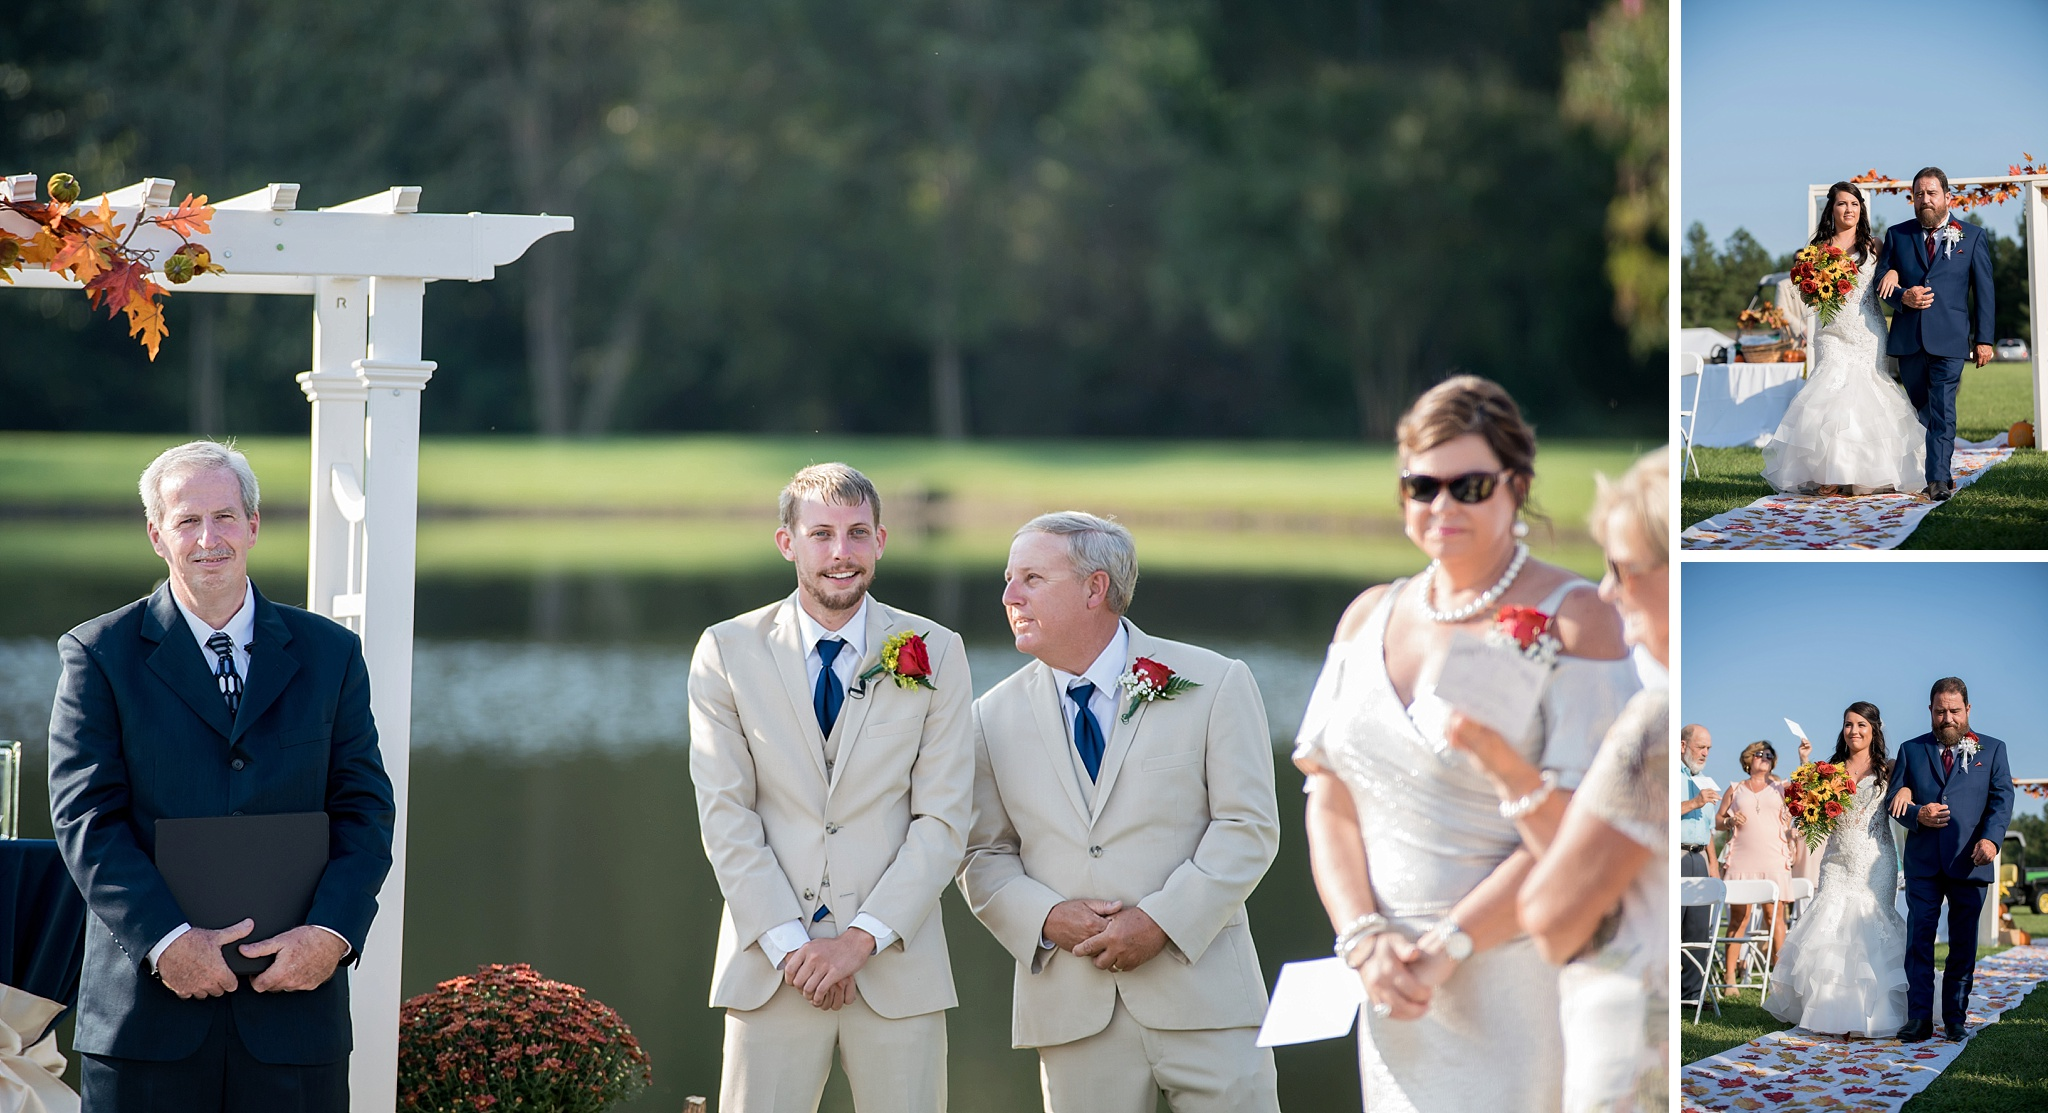 Bailey-NC-Wedding-Photographer-158.jpg